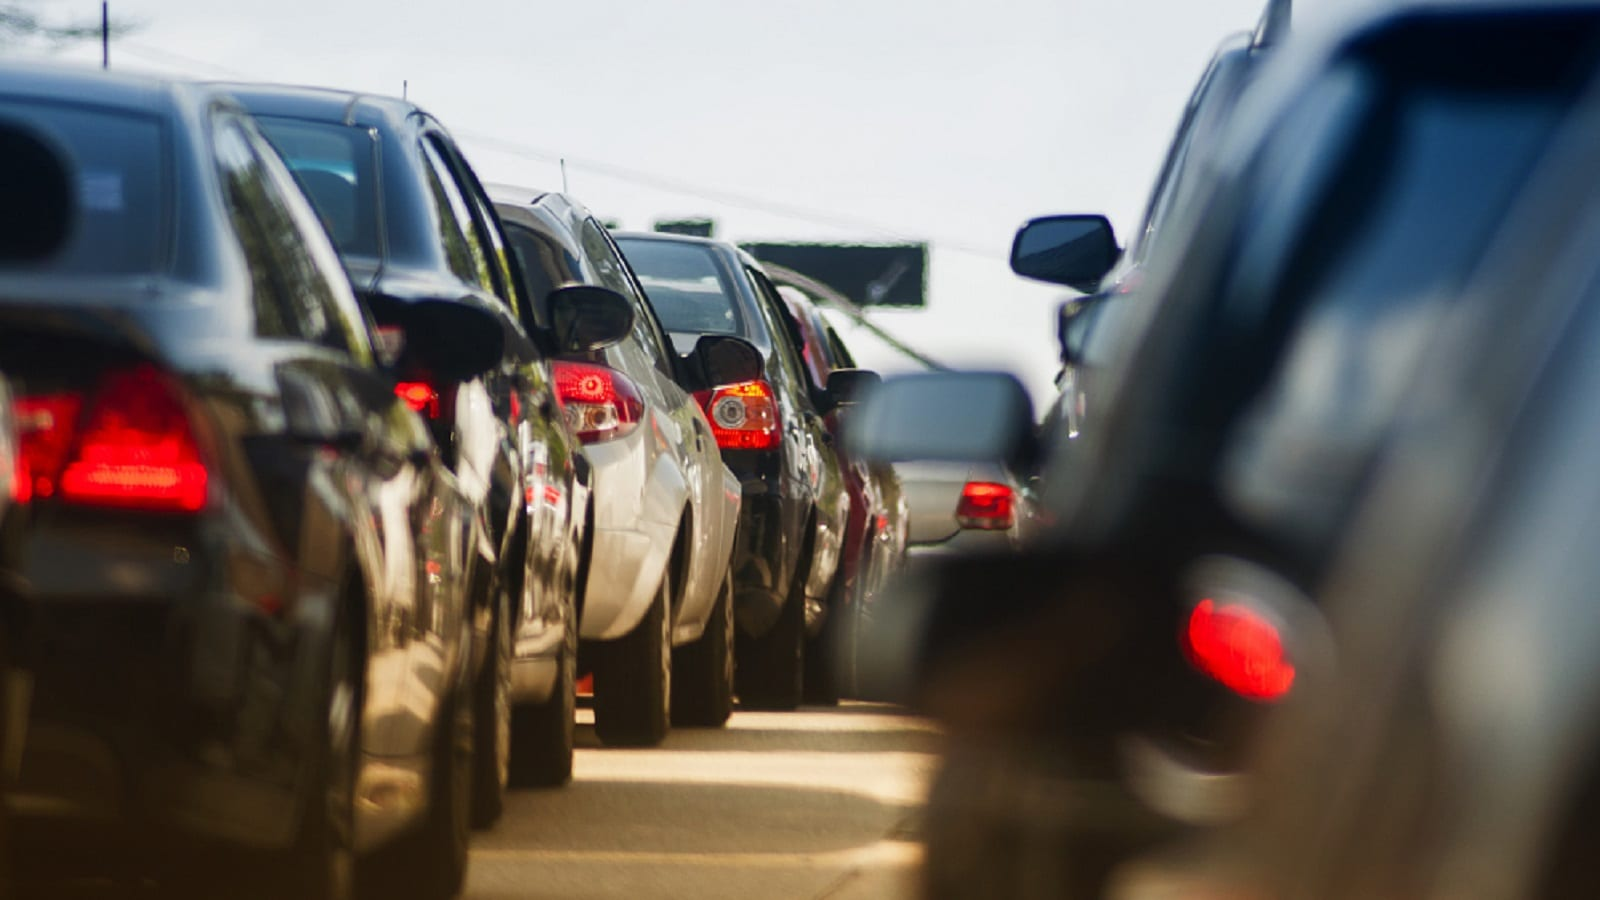 Heavy Traffic Jam Stock Photo